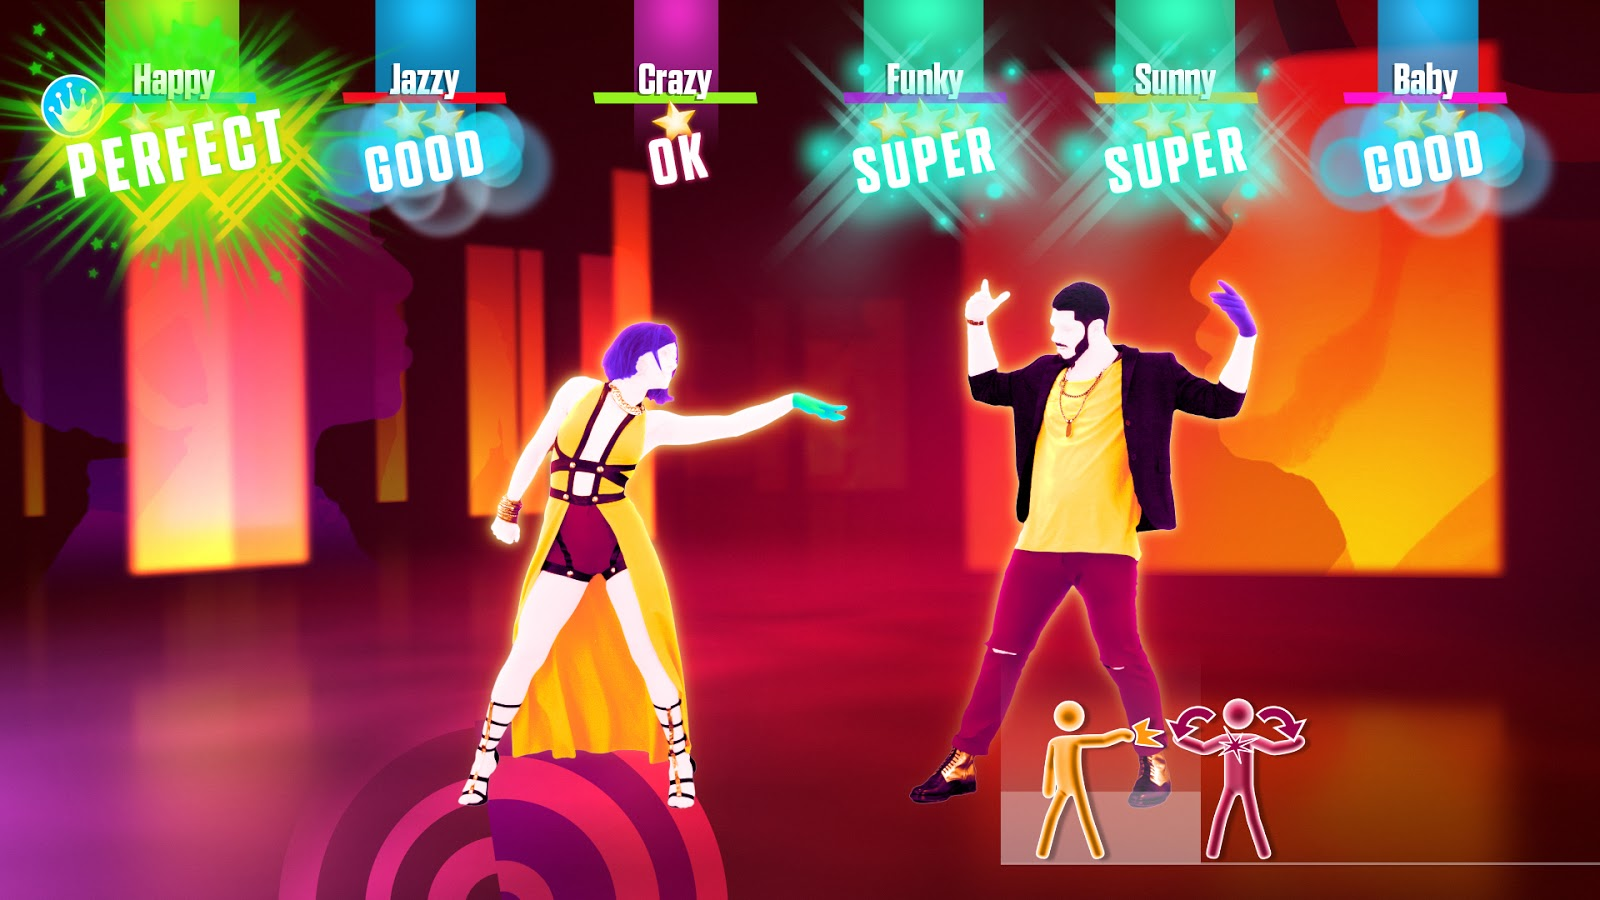 Is just dance 2018 on xbox 360 - Auburn basketball tickets